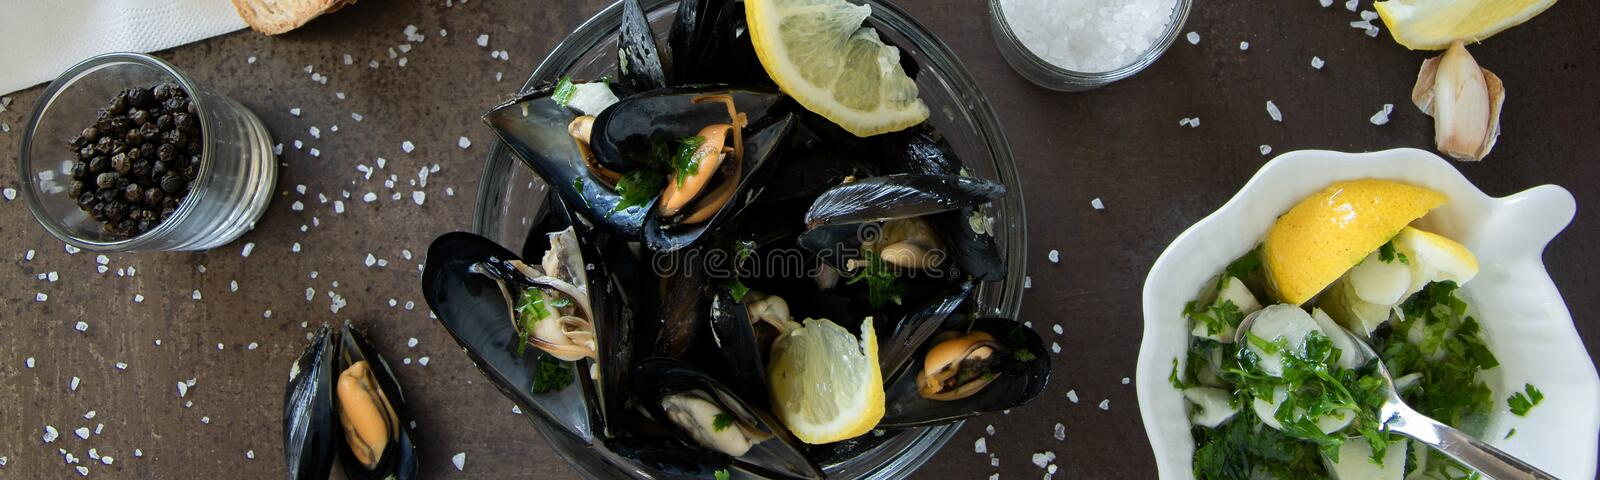 Cooked delicious black mussel with toasted bread and tasty sauce. Healthy eating concept,  protein  food stock image